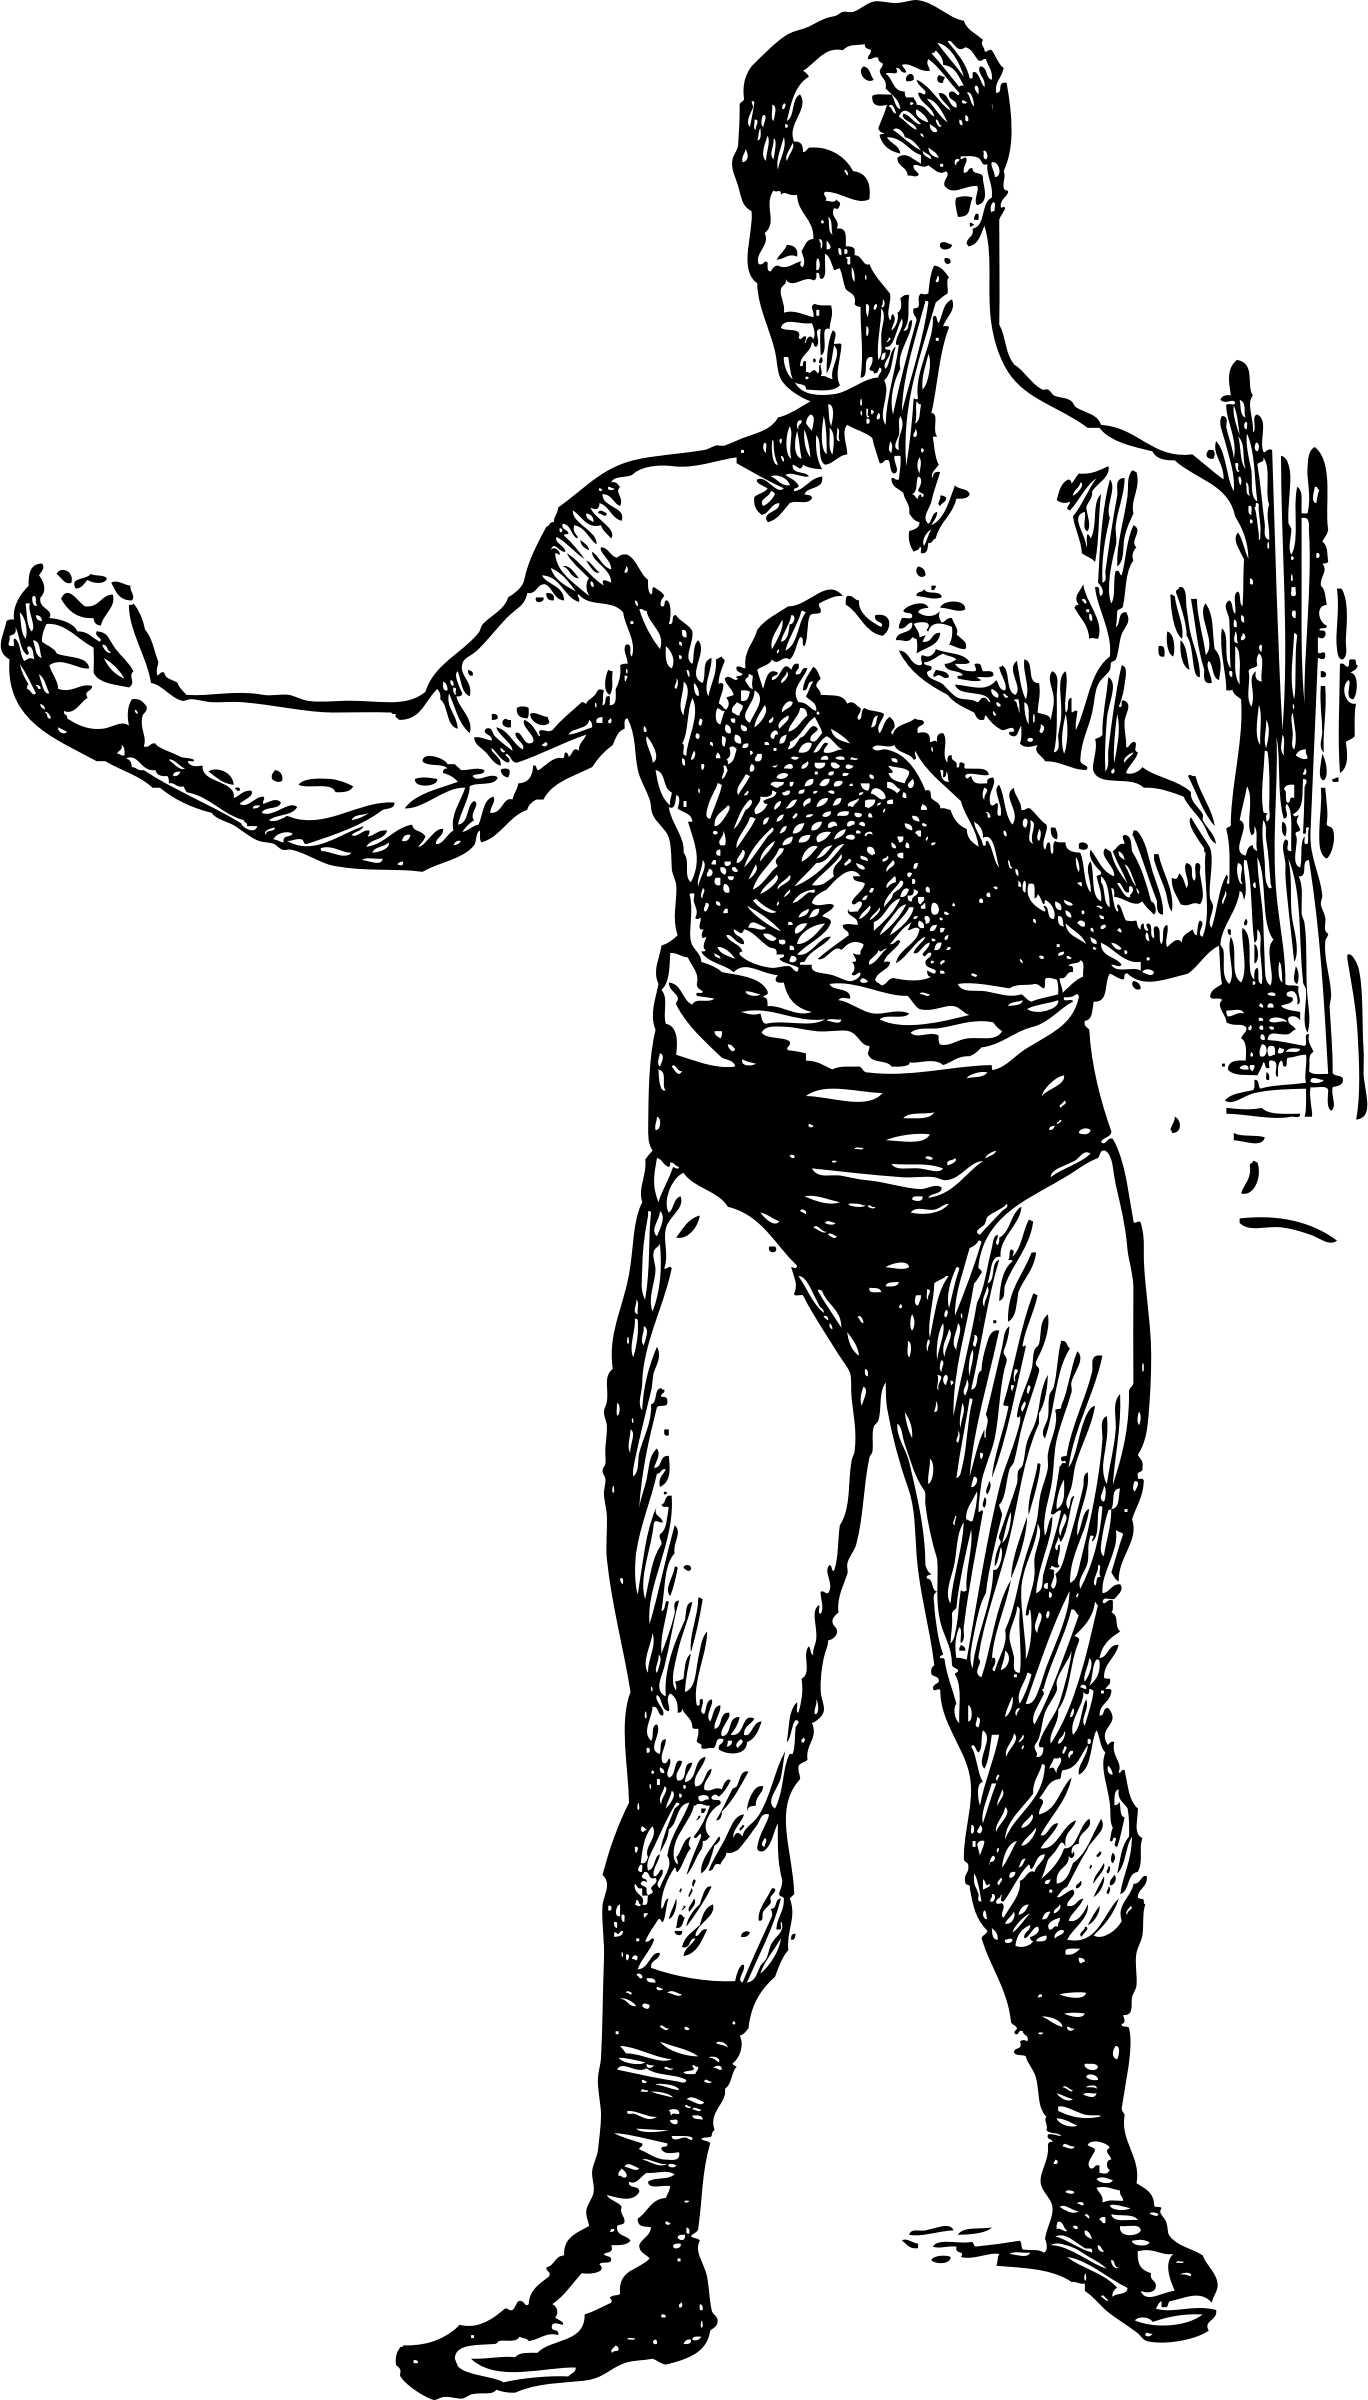 Tom Sharkey Pugilist by johnny_automatic